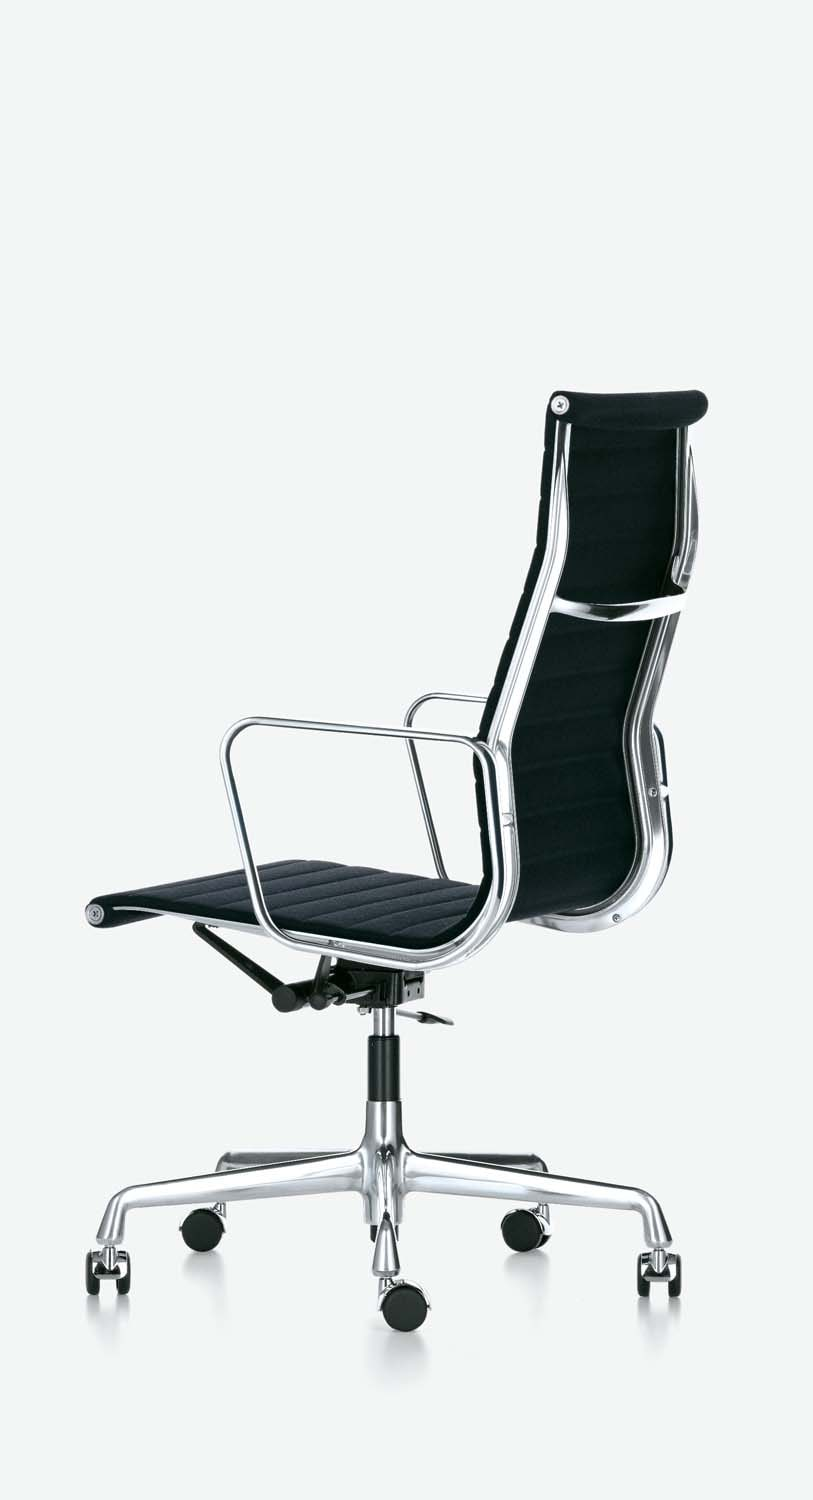 vitra ea 119 stoff aluminium chair pro office. Black Bedroom Furniture Sets. Home Design Ideas